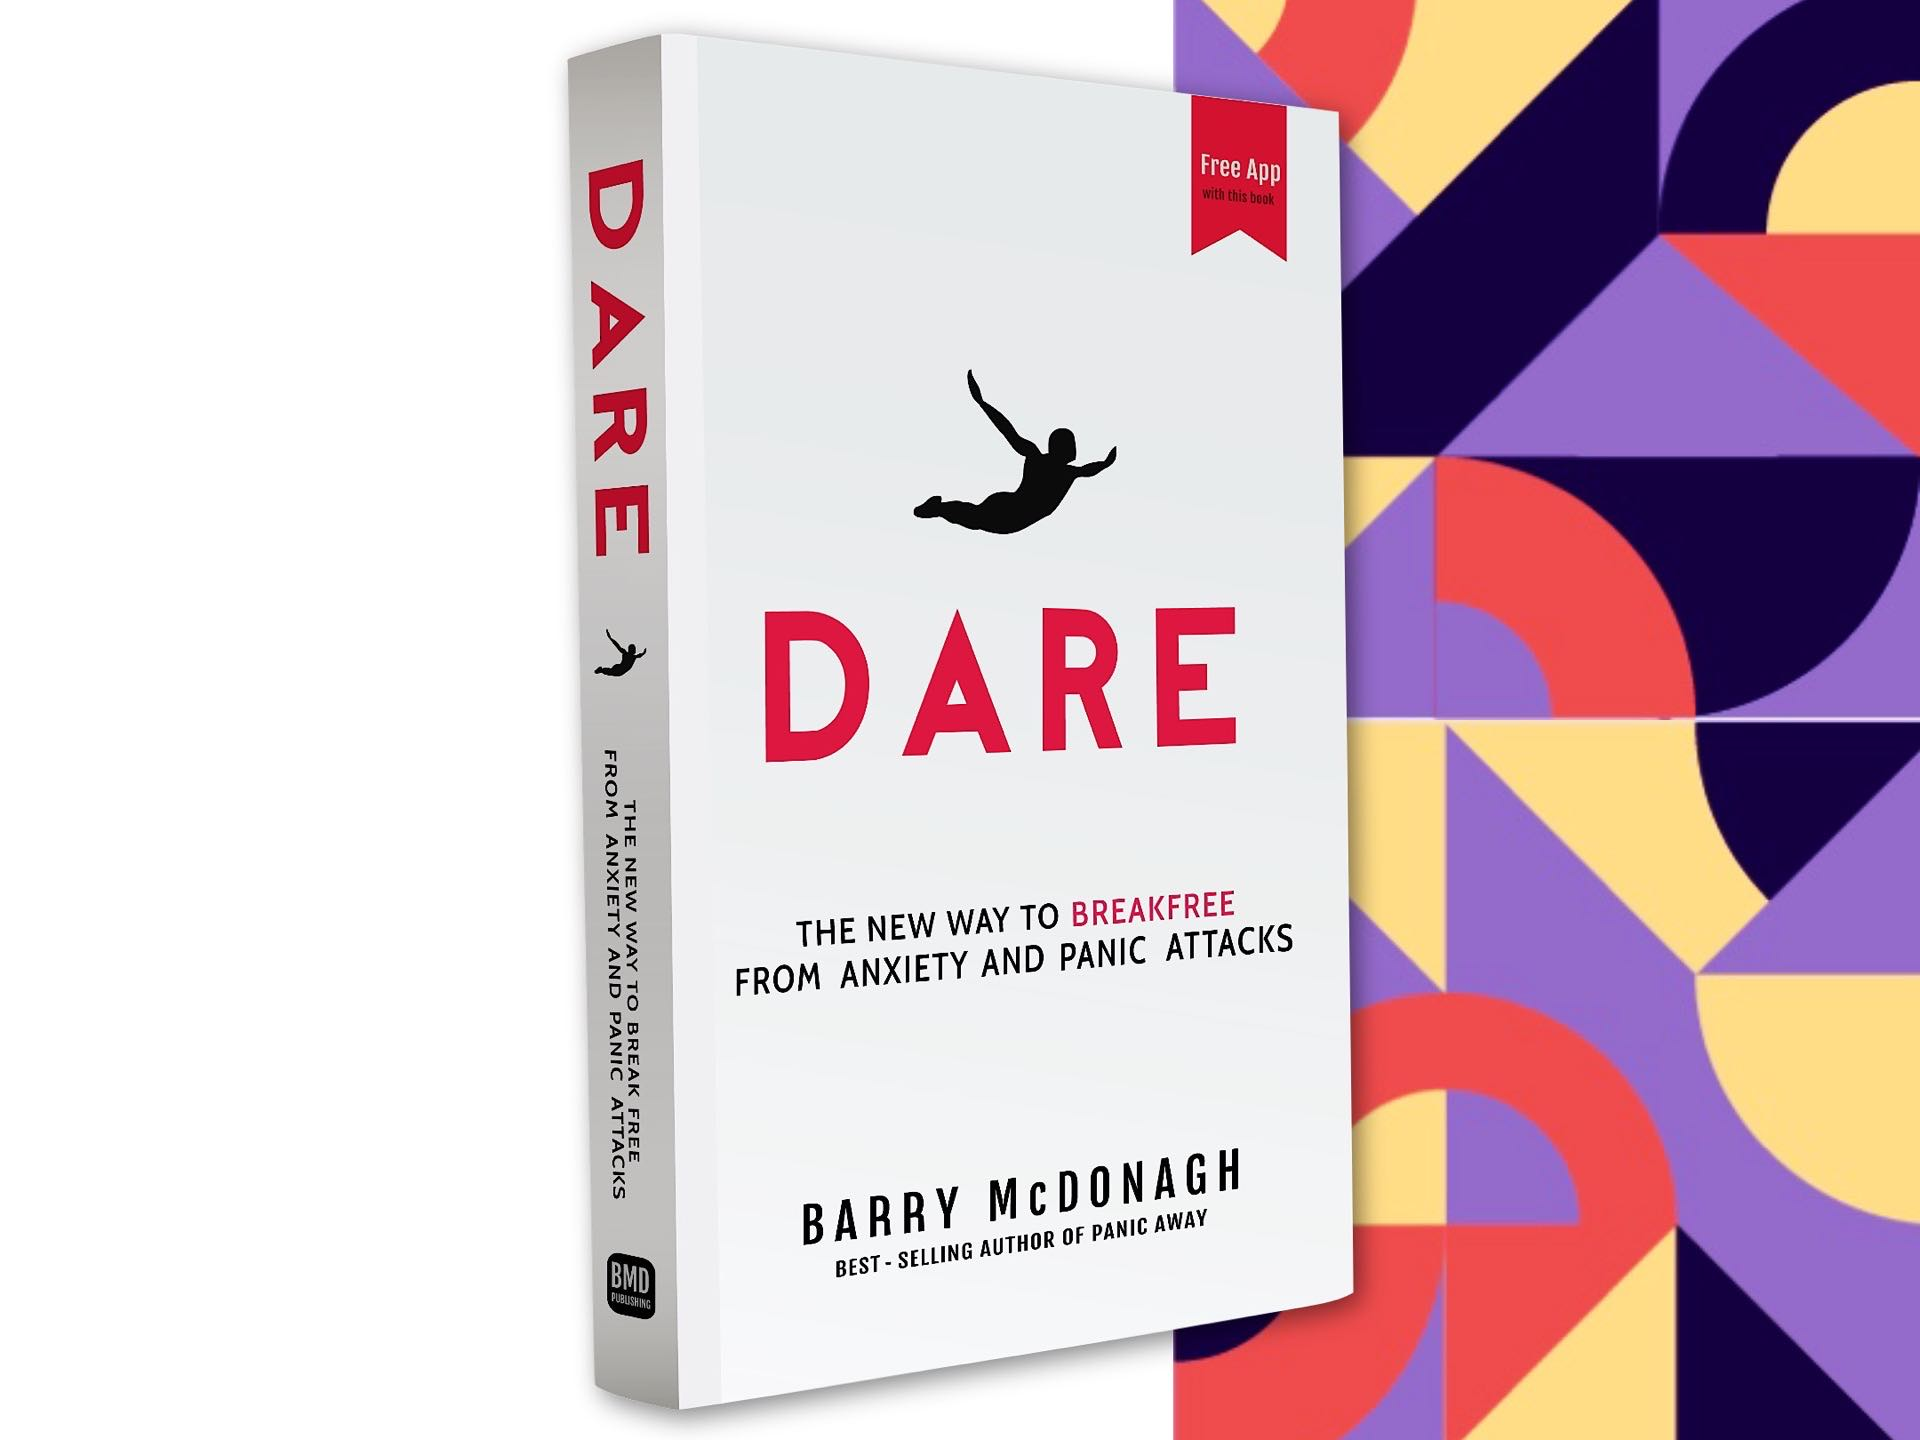 dare-by-barry-mcdonagh